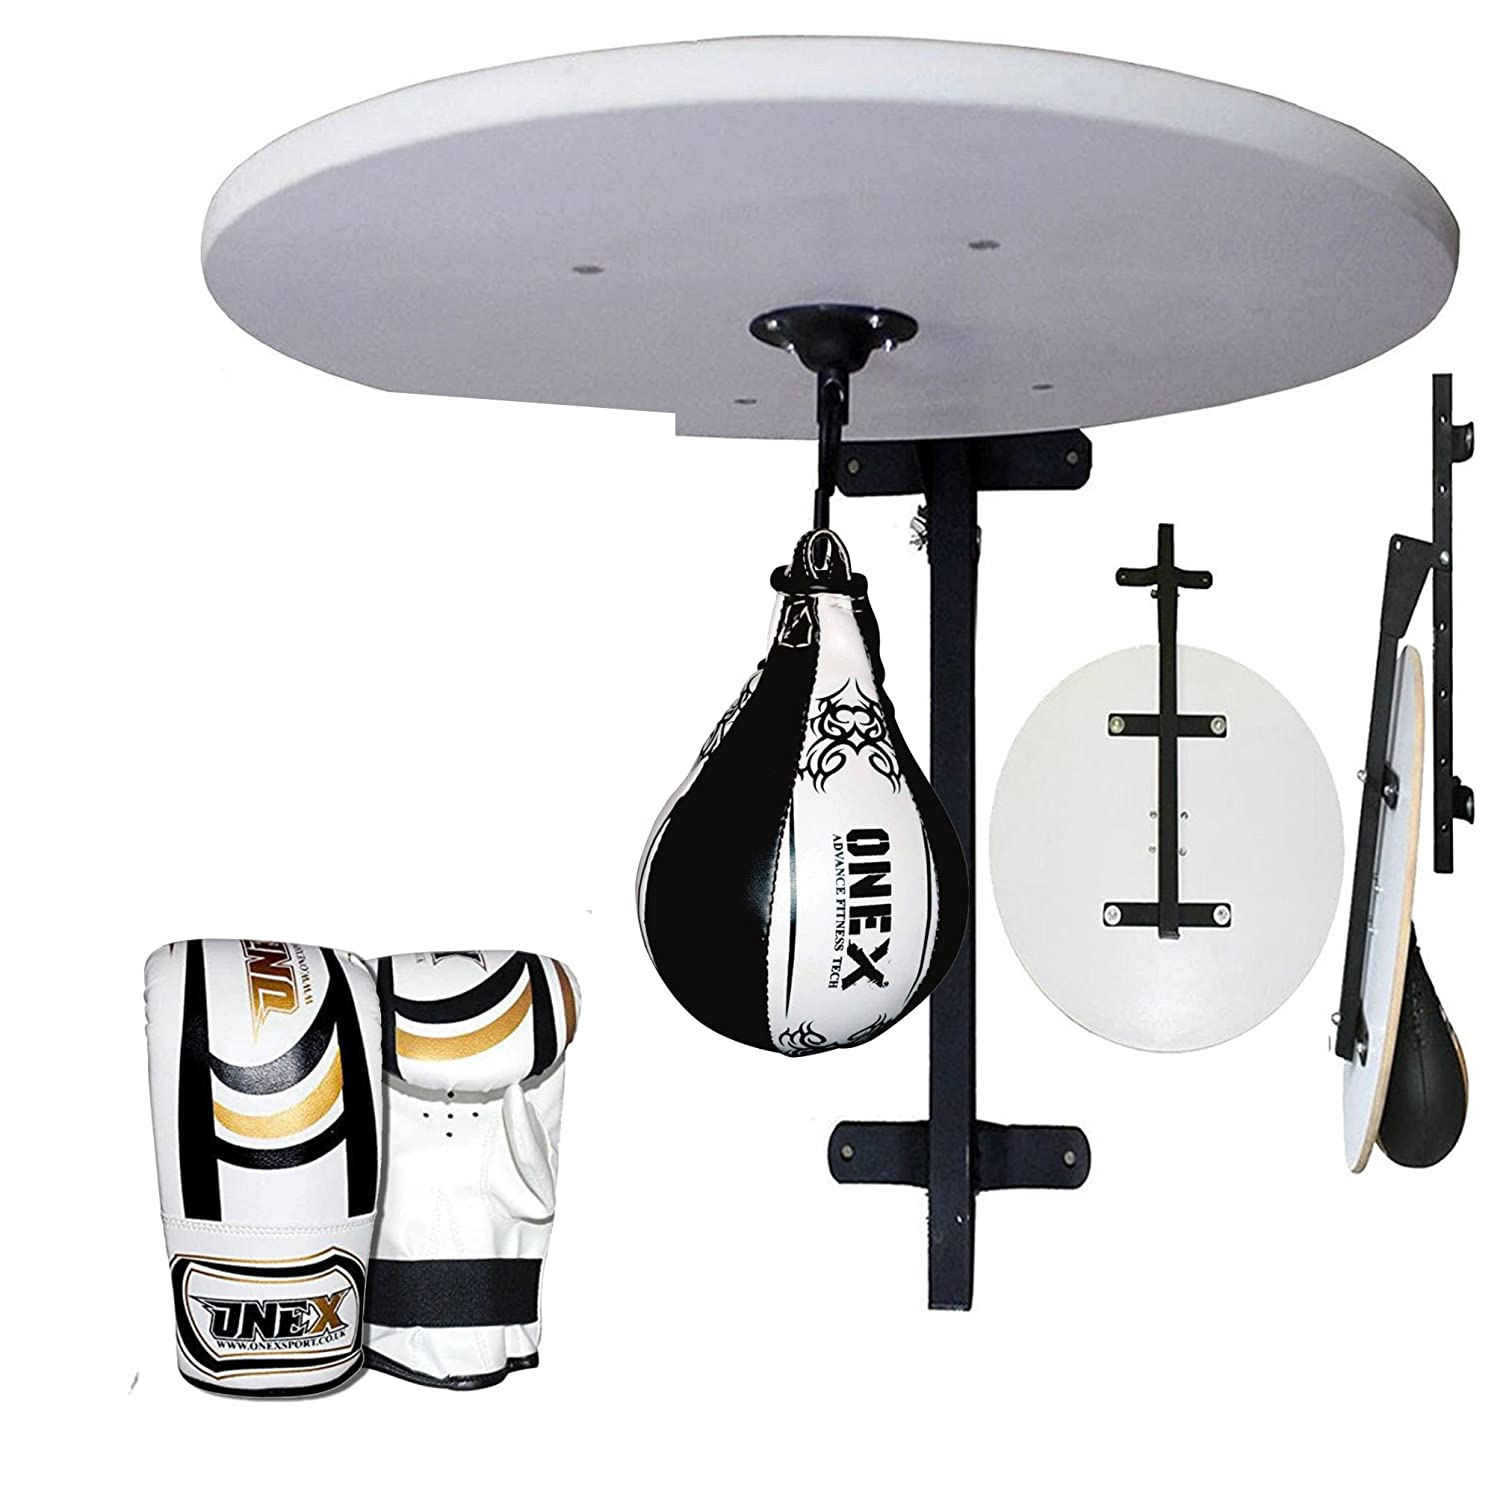 TurnerMAX Speed ball Platform Set Boxing Speed bag Training Gym Exercise